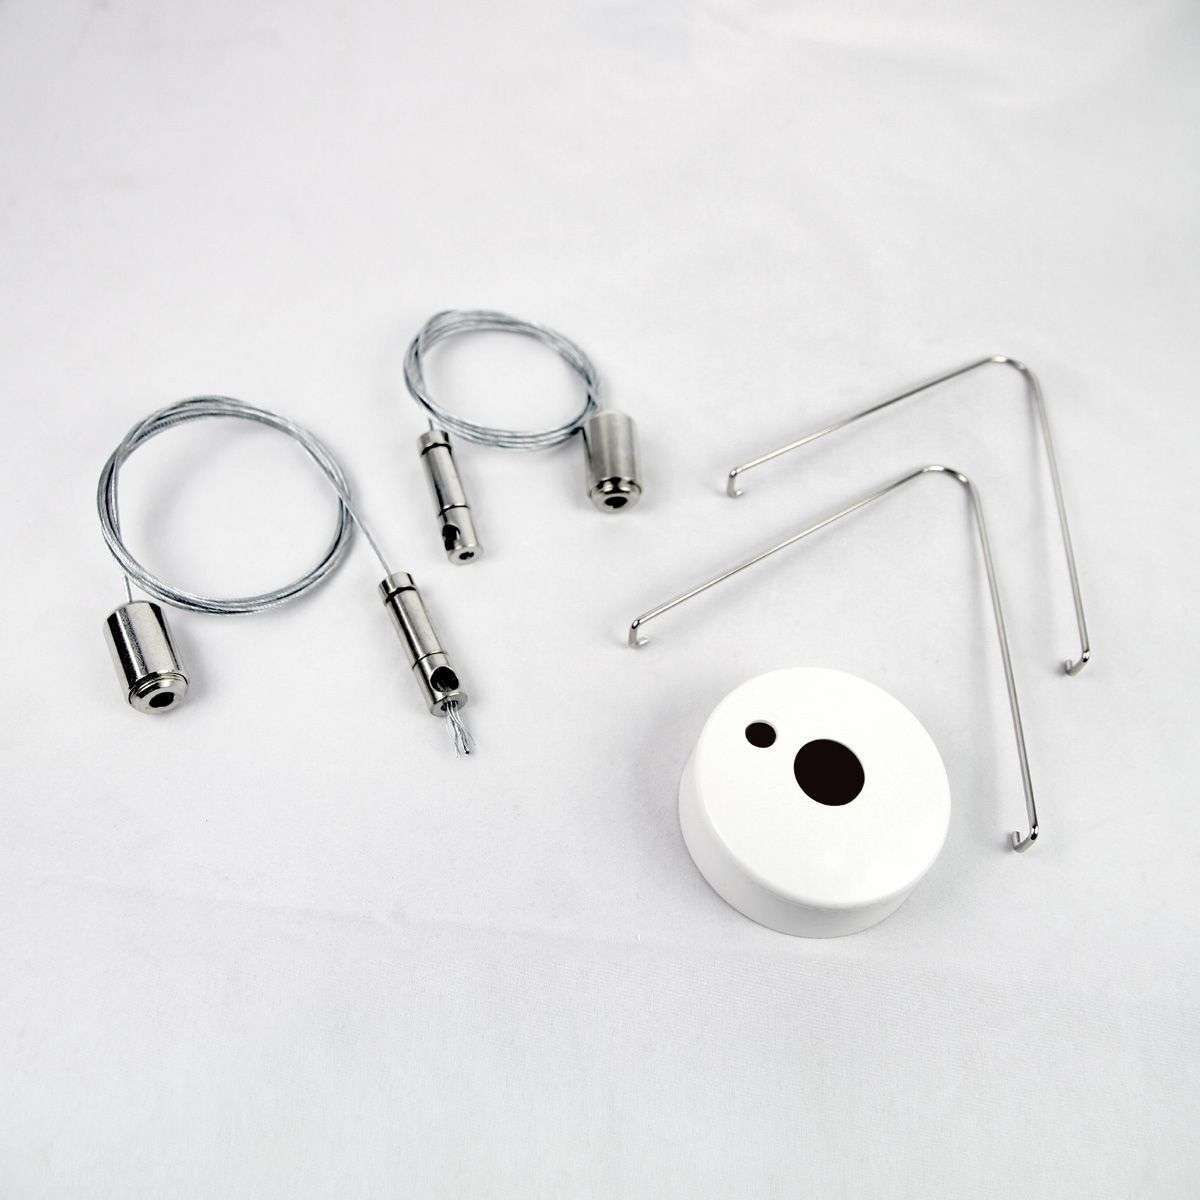 Stainless steel cable suspension for Modul ESO-1009004-31